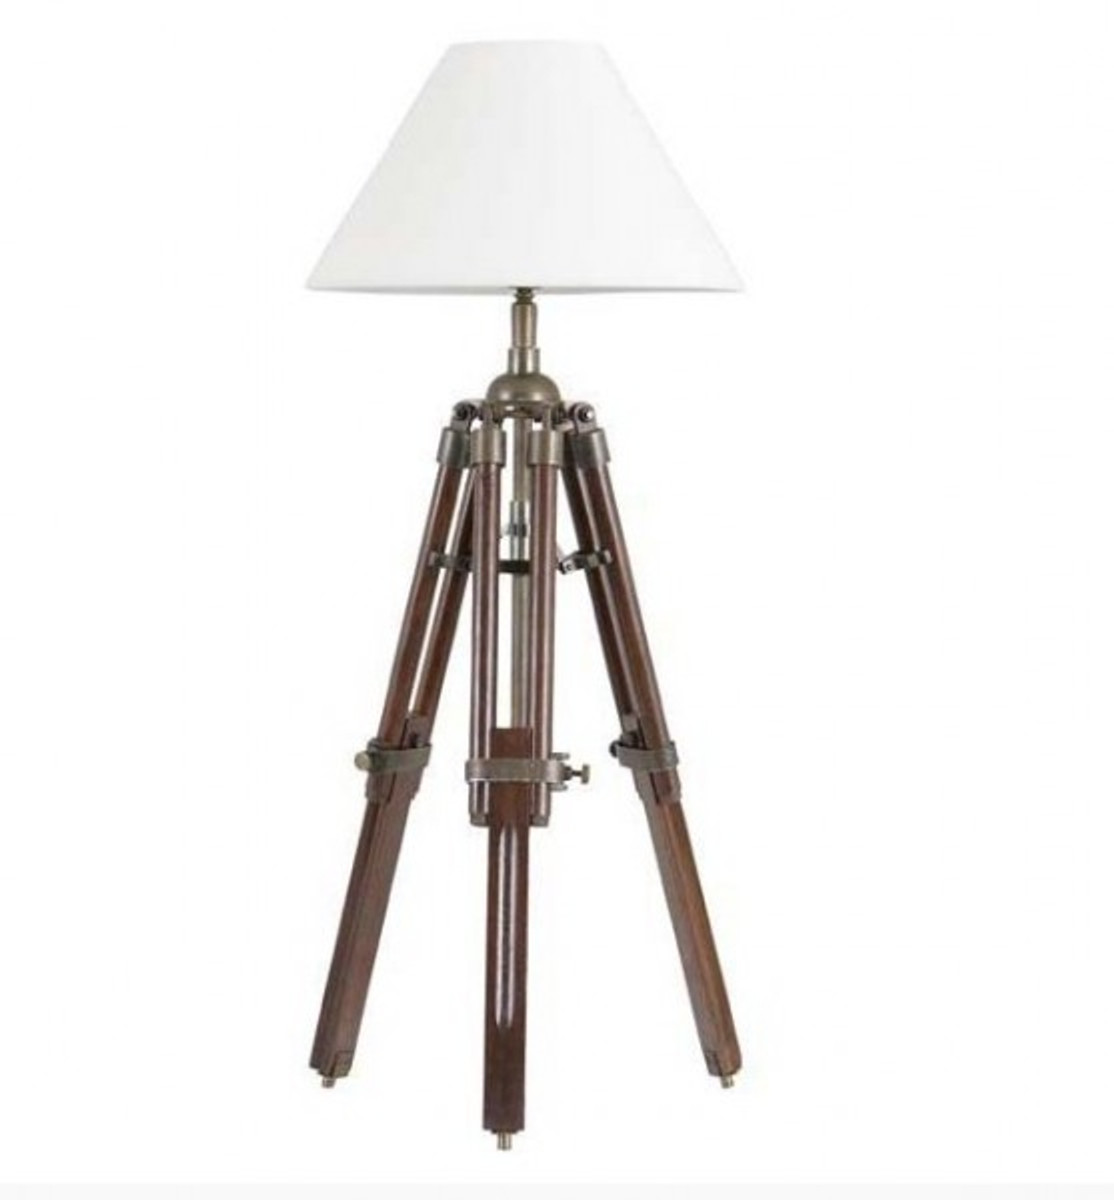 designer stativ lampe telescope hockerleuchte mit weissem schirm h 60 cm tripod lamp. Black Bedroom Furniture Sets. Home Design Ideas